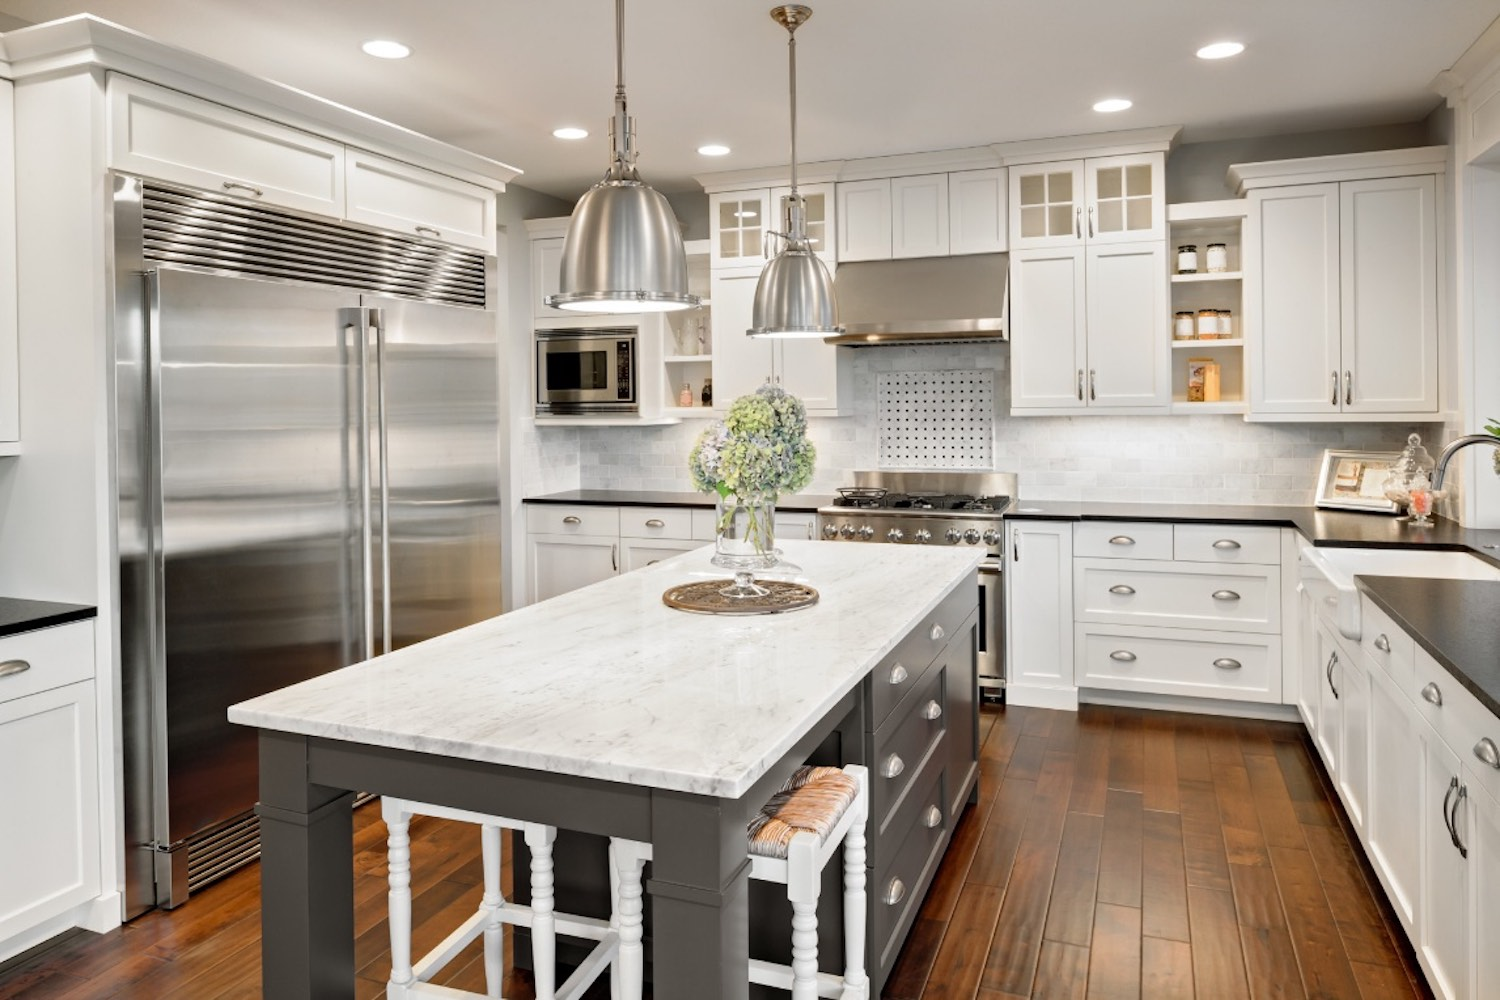 How Much Do Kitchen Cabinets Cost? A Detailed Guide